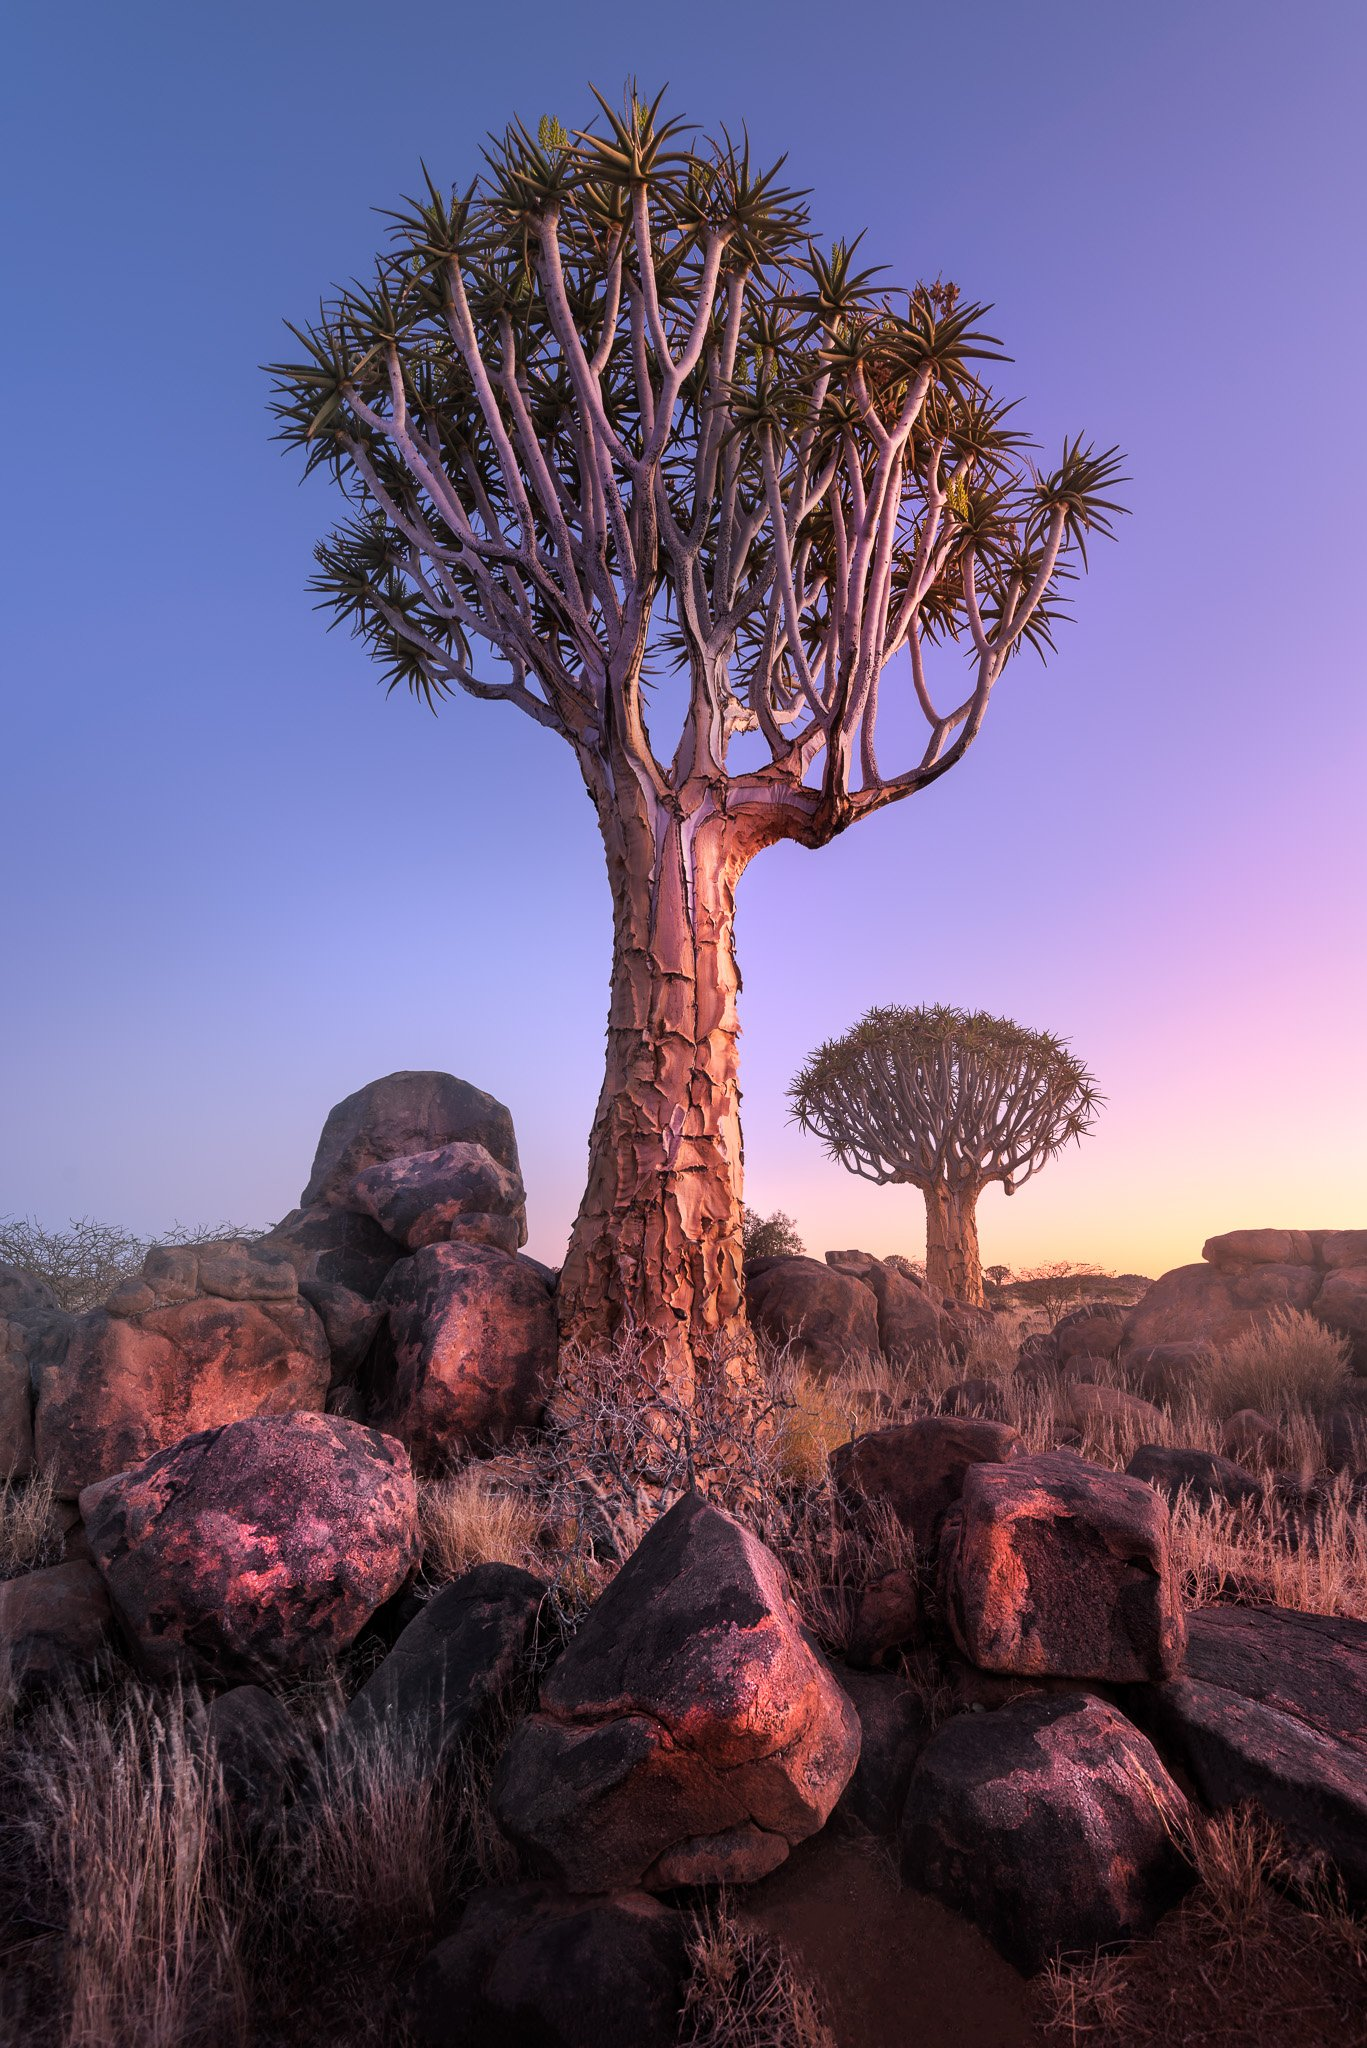 Africa, african, aloe, arid, bark, black, blue, branches, bush, dawn, desert, dichotoma, dry, forest, giant, granite, grass, green, keetmanshoop, landscape, light, magical, morning, mystical, namib, namibia, national, natural, nature, outdoor, park, plant, anshar